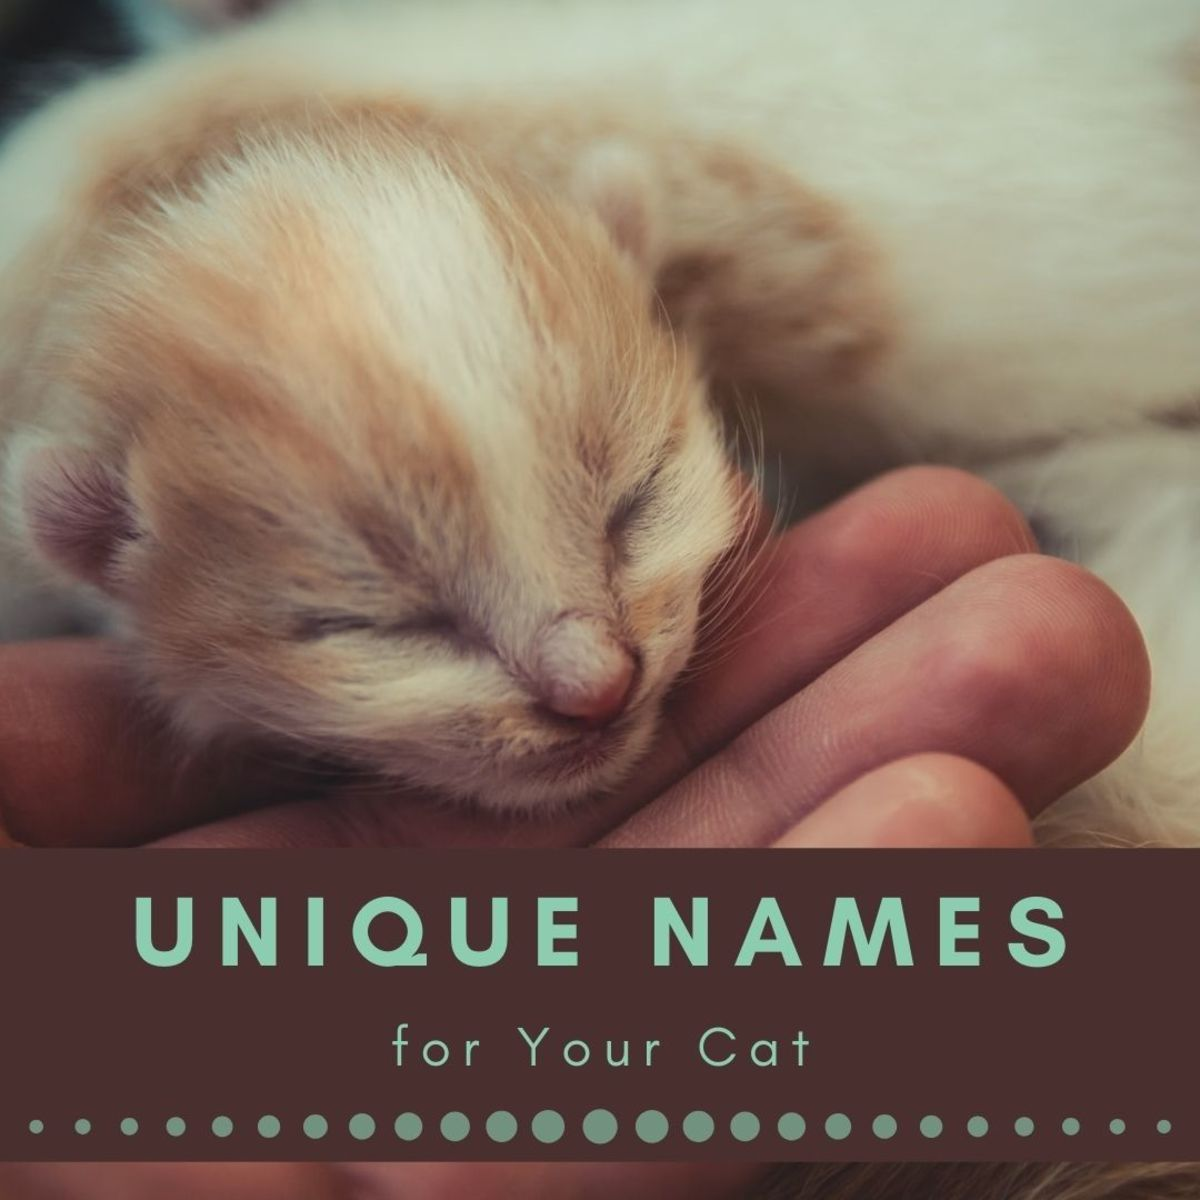 It can be difficult to find a unique cat name you like and fits your pet.